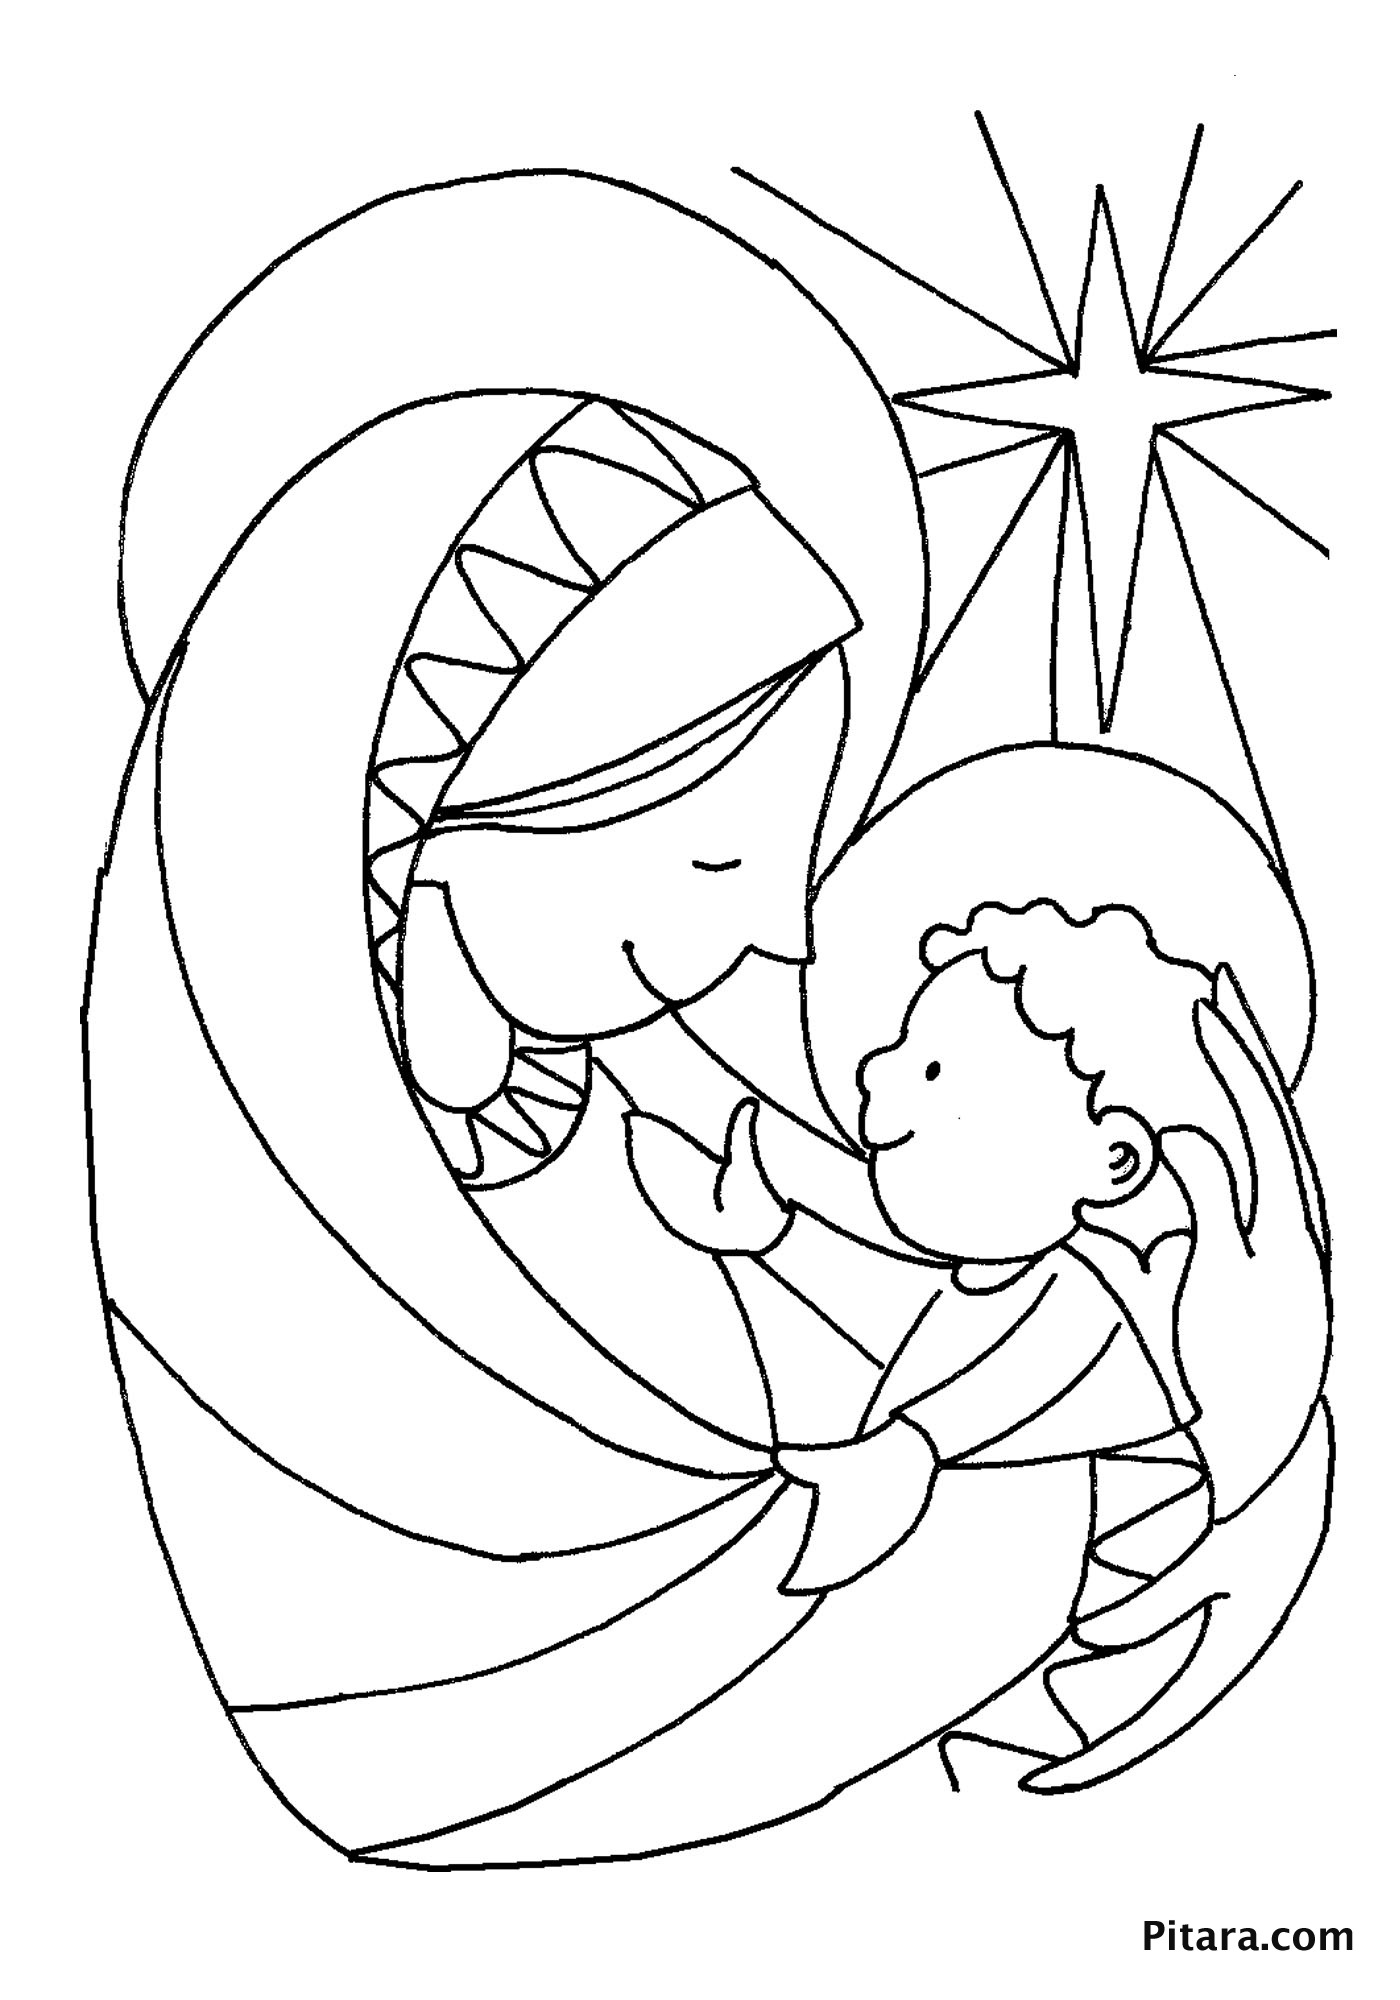 Mary & baby Jesus – Coloring page